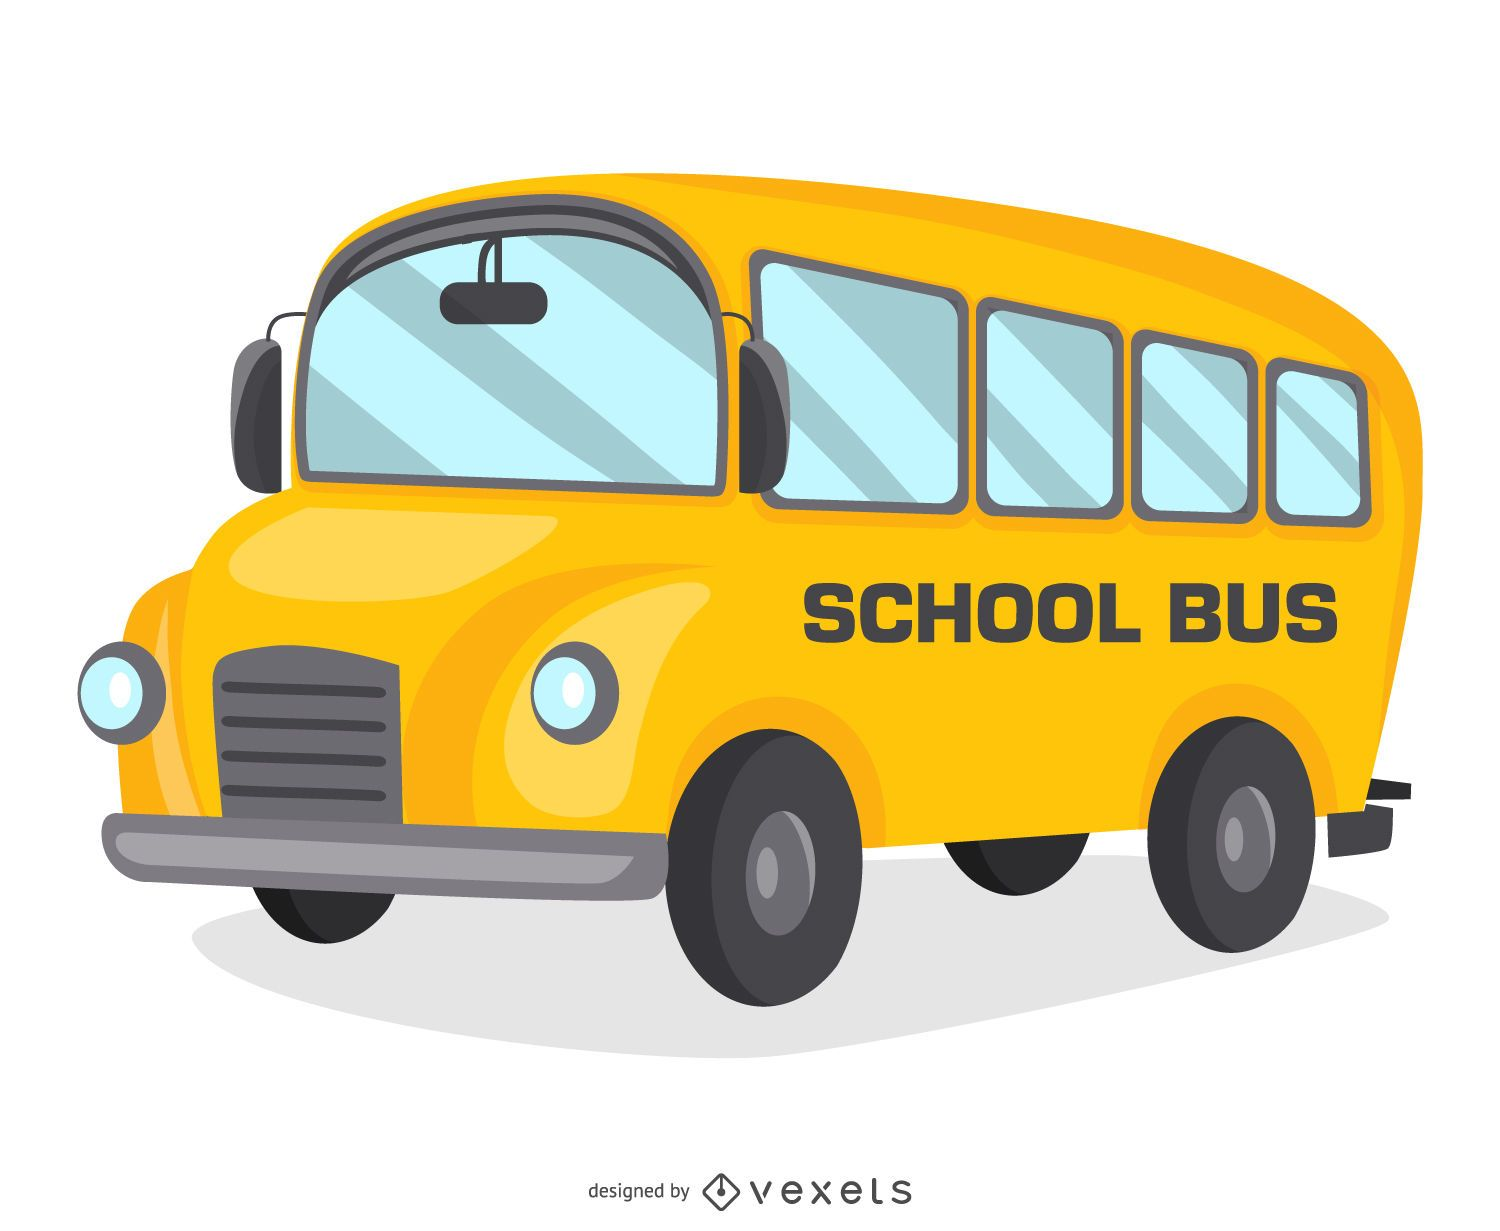 bus vector graphics to download rh vexels com school bus vector graphic school bus vector black and white